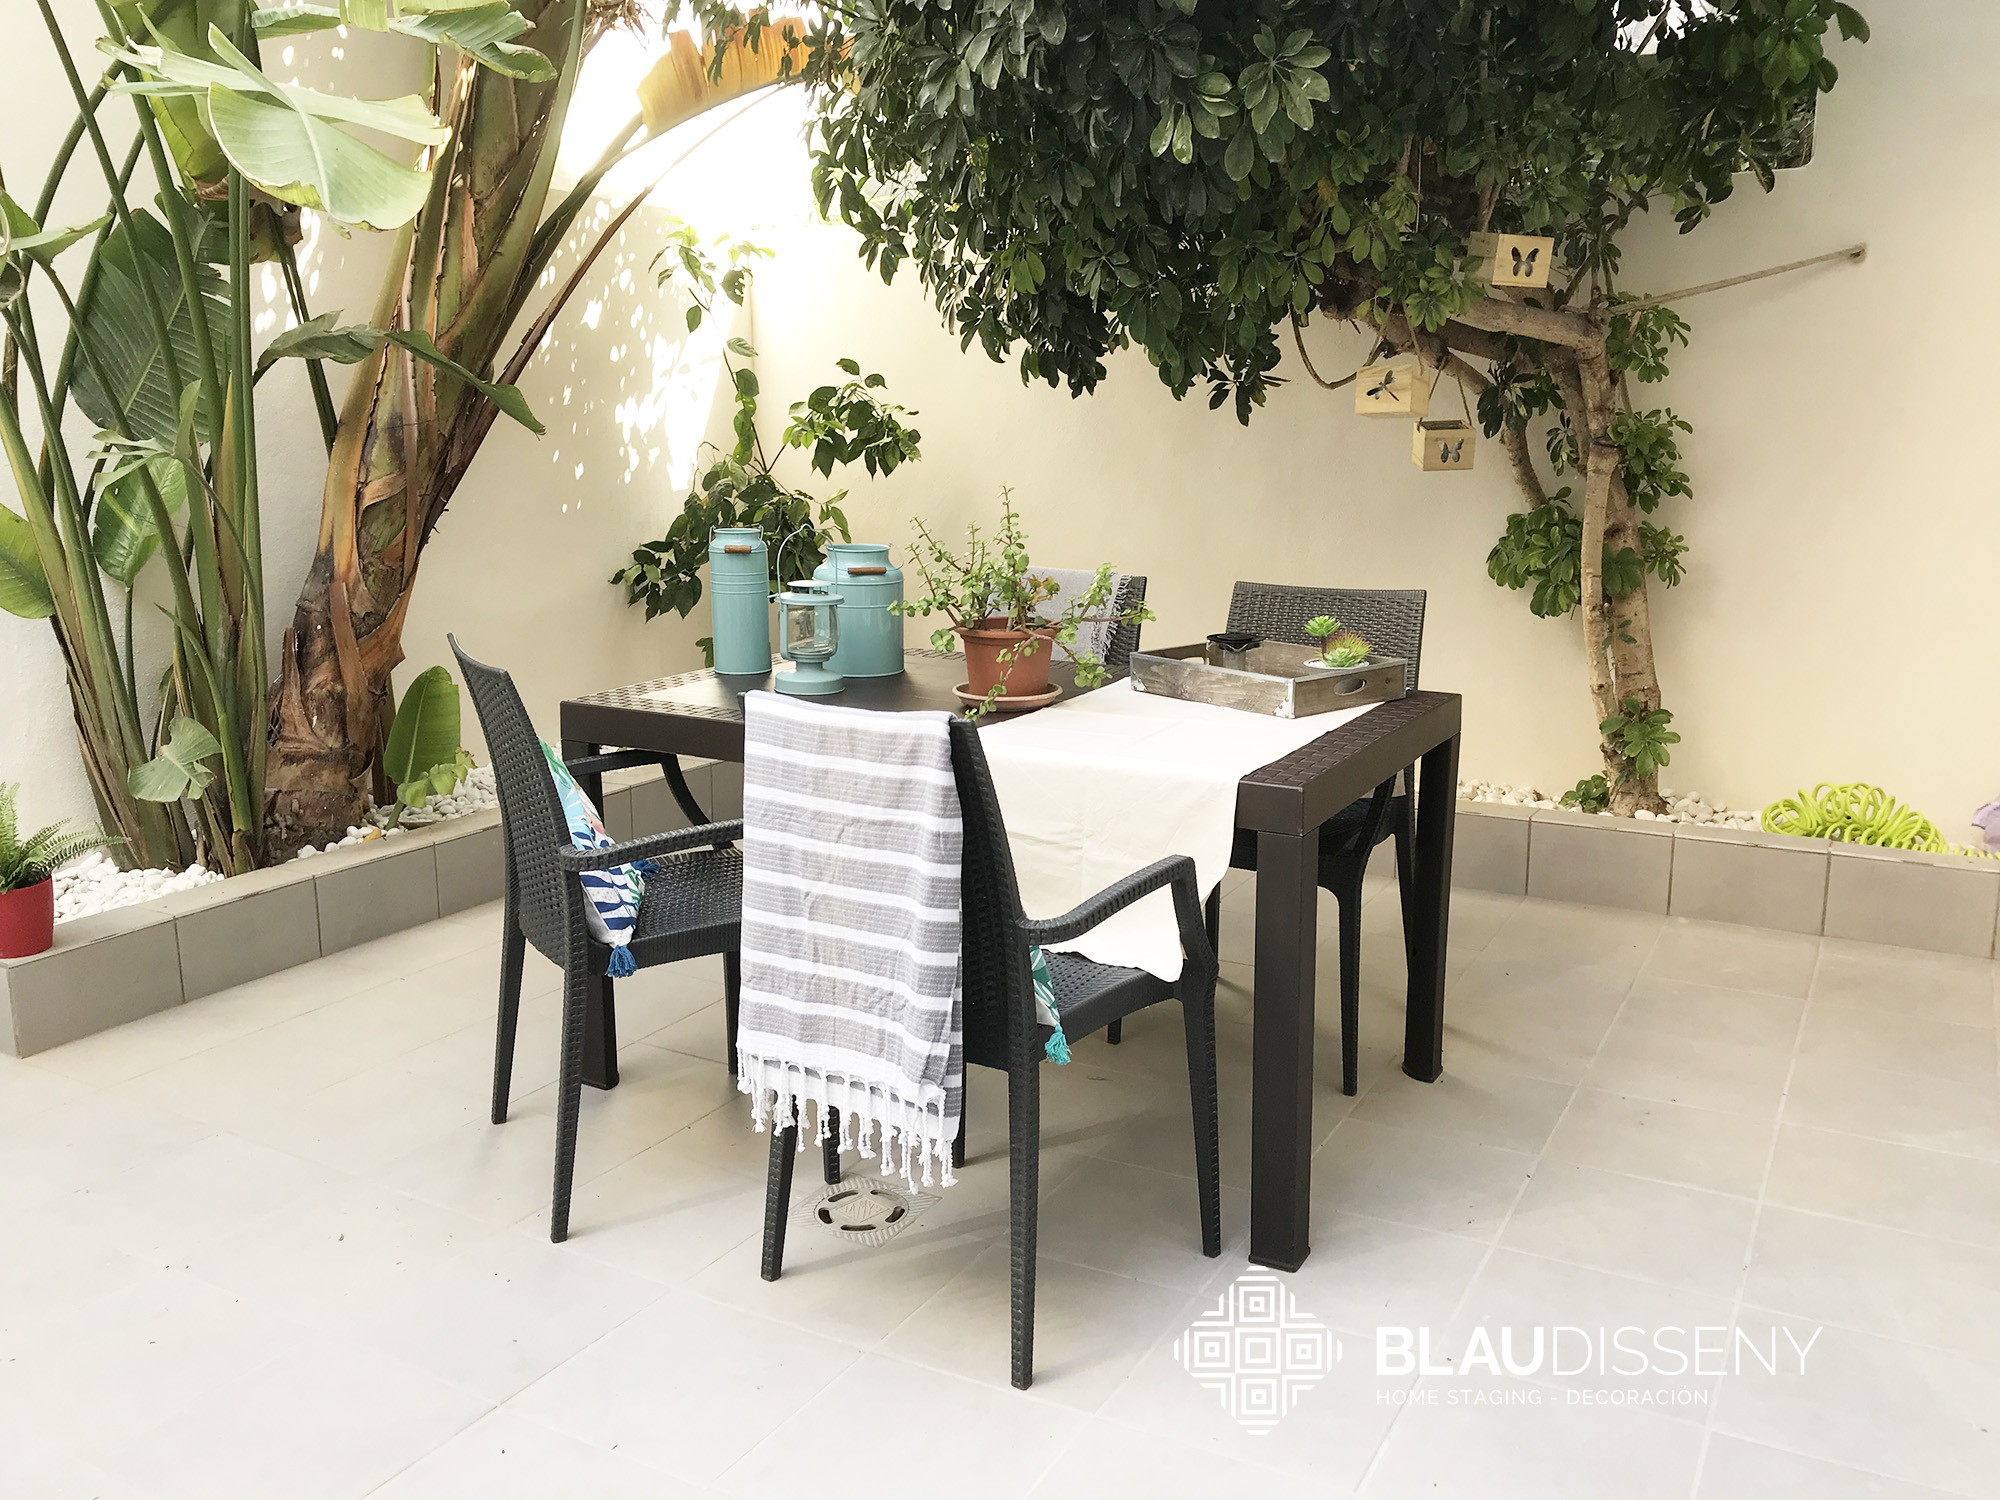 Blaudisseny-home-staging-santa-catalina-terraza-2-despues-logo